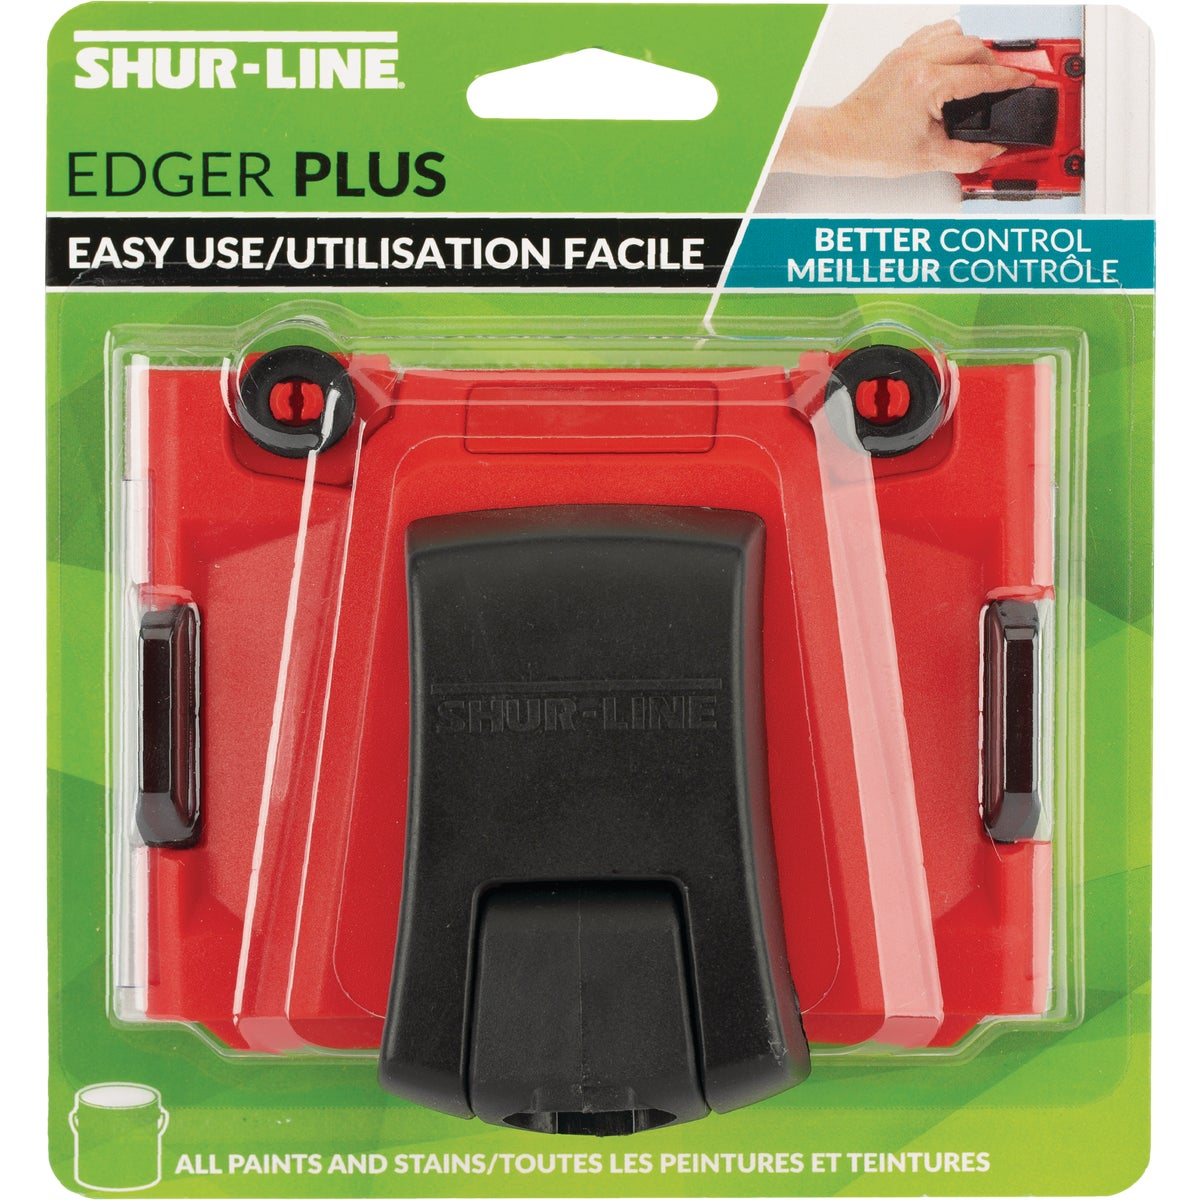 CEILING/TRIM PAINT EDGER - 00500 by Shur Line